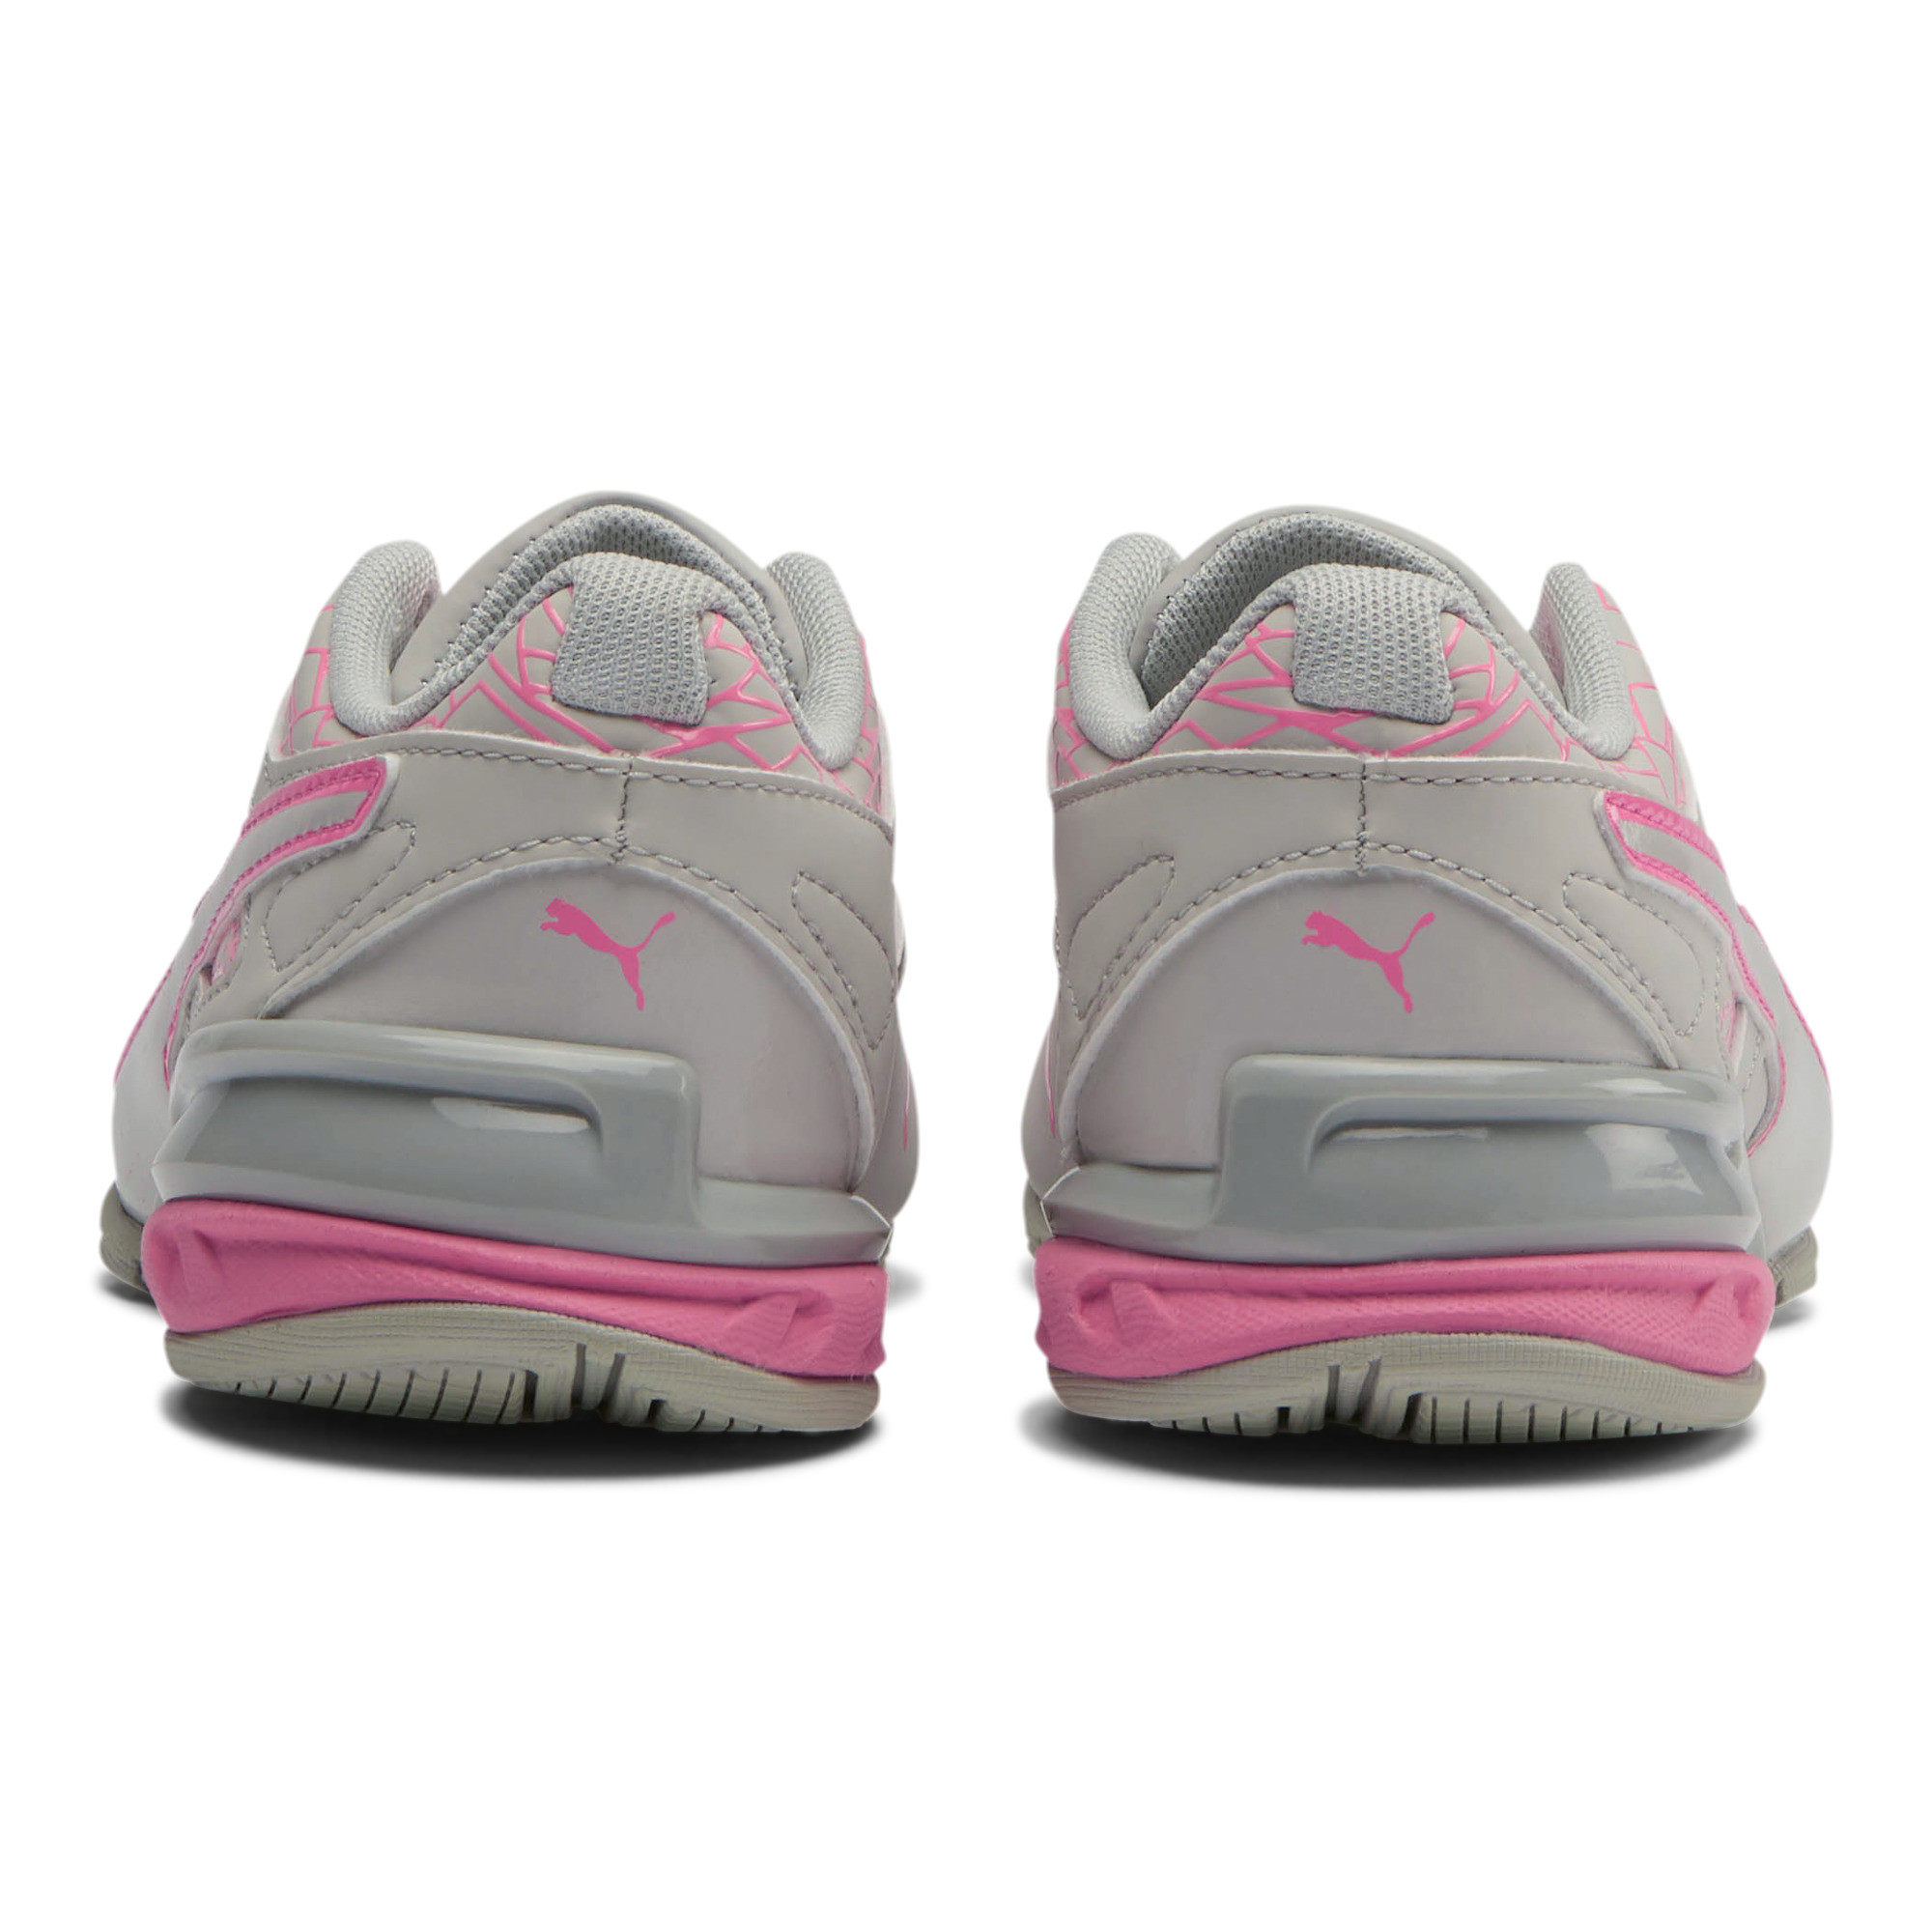 PUMA-Tazon-6-Fracture-AC-Little-Kids-039-Shoes-Kids-Shoe-Kids thumbnail 14